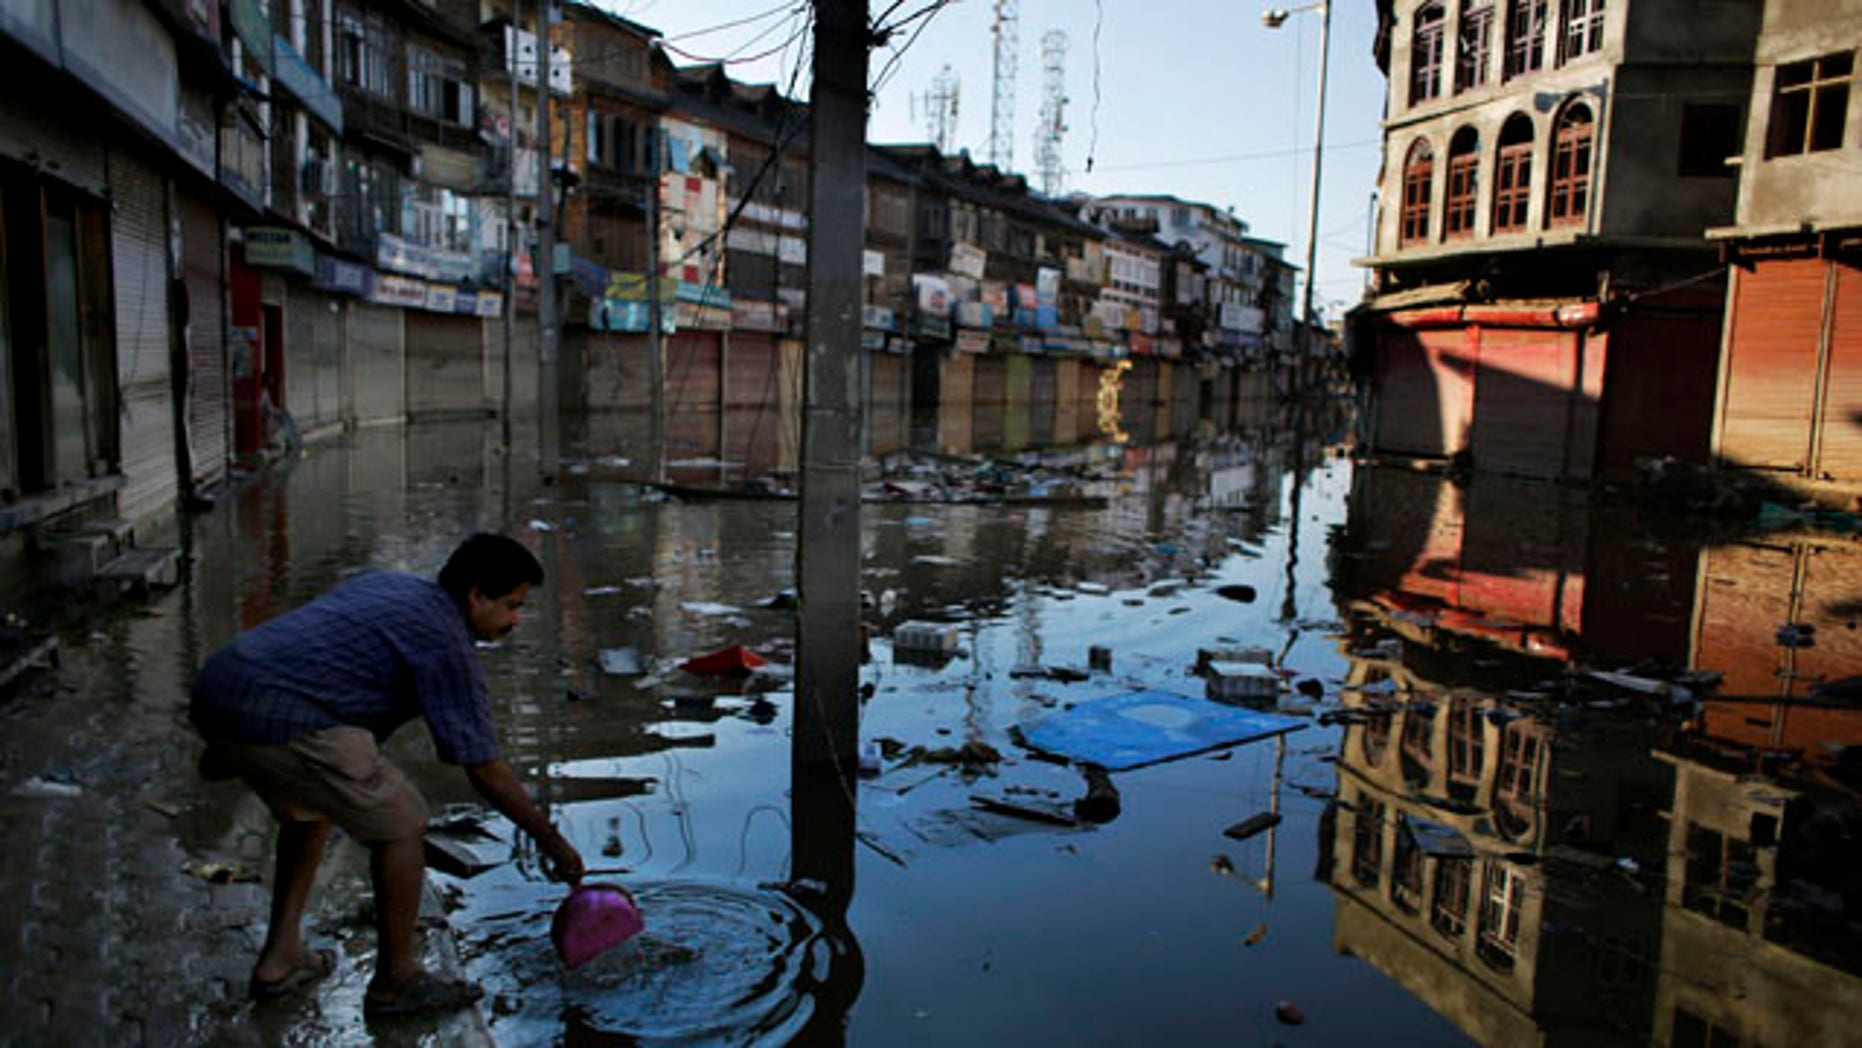 September 16, 2014: A shopkeeper throws the silt he removed from his shop into the receding flood waters in Srinagar, Indian-controlled Kashmir. (AP Photo/Altaf Qadri)